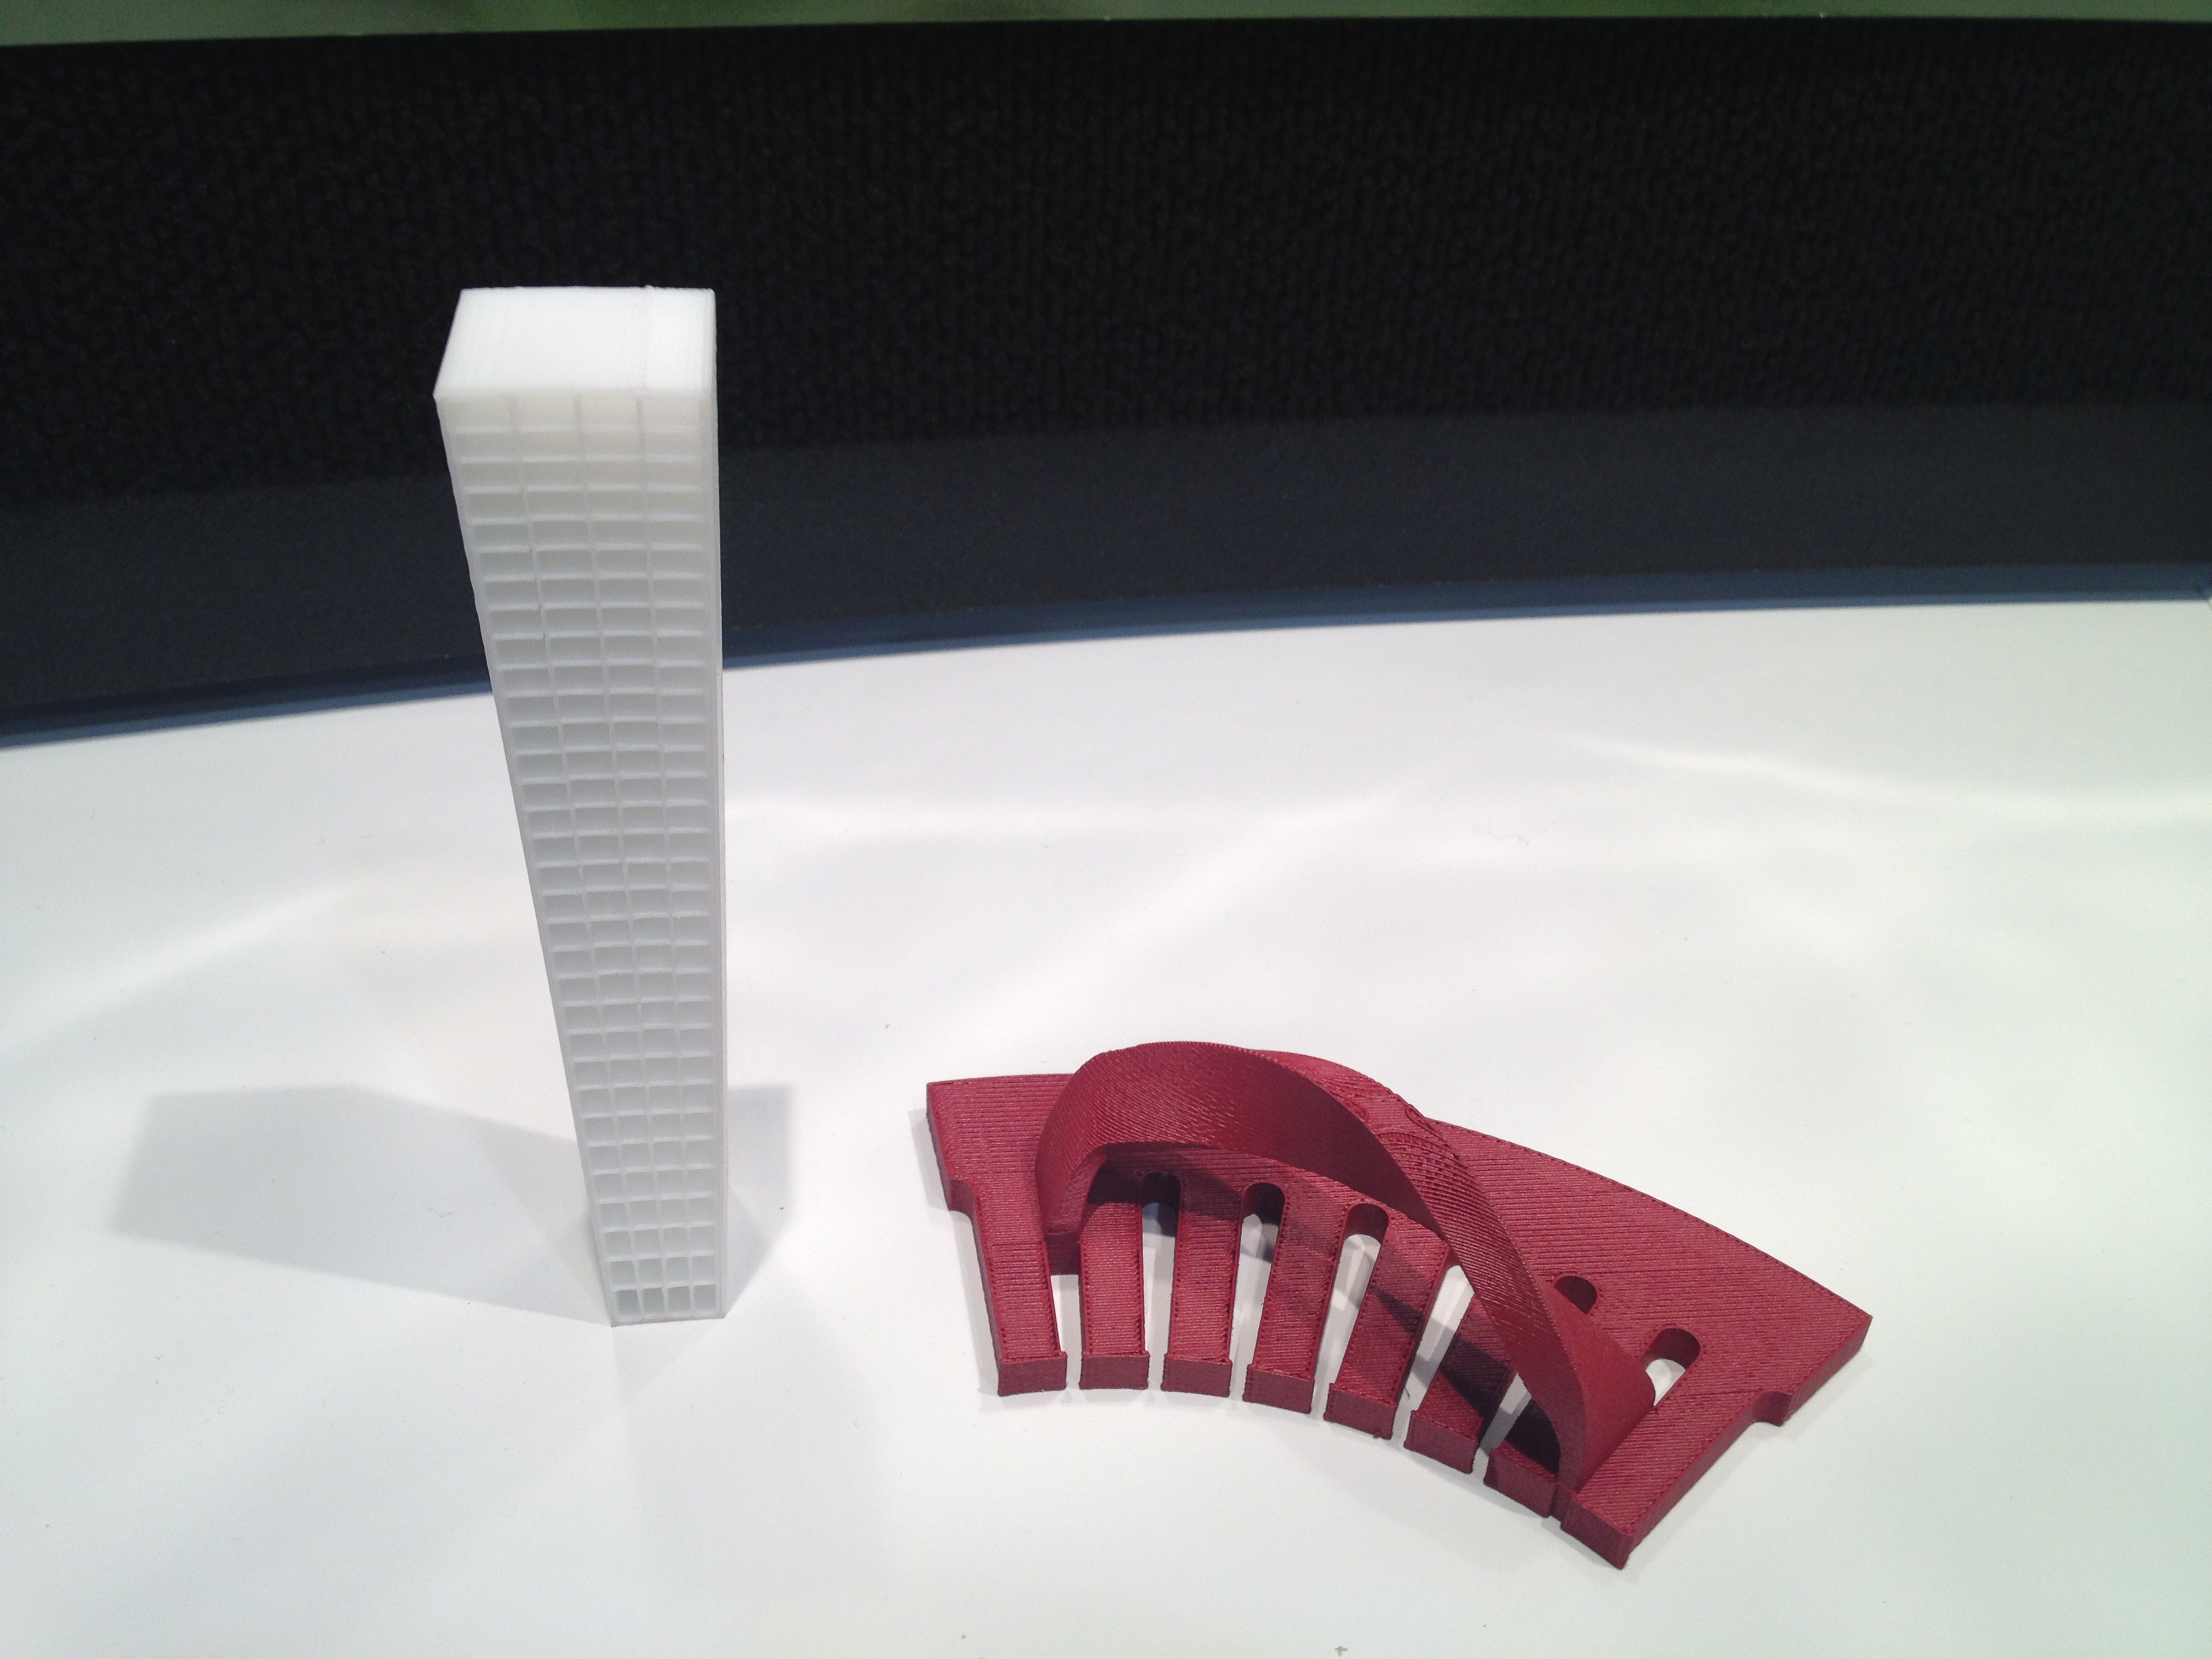 3D-printed parts for an electric car motor from United Technologies Research Center